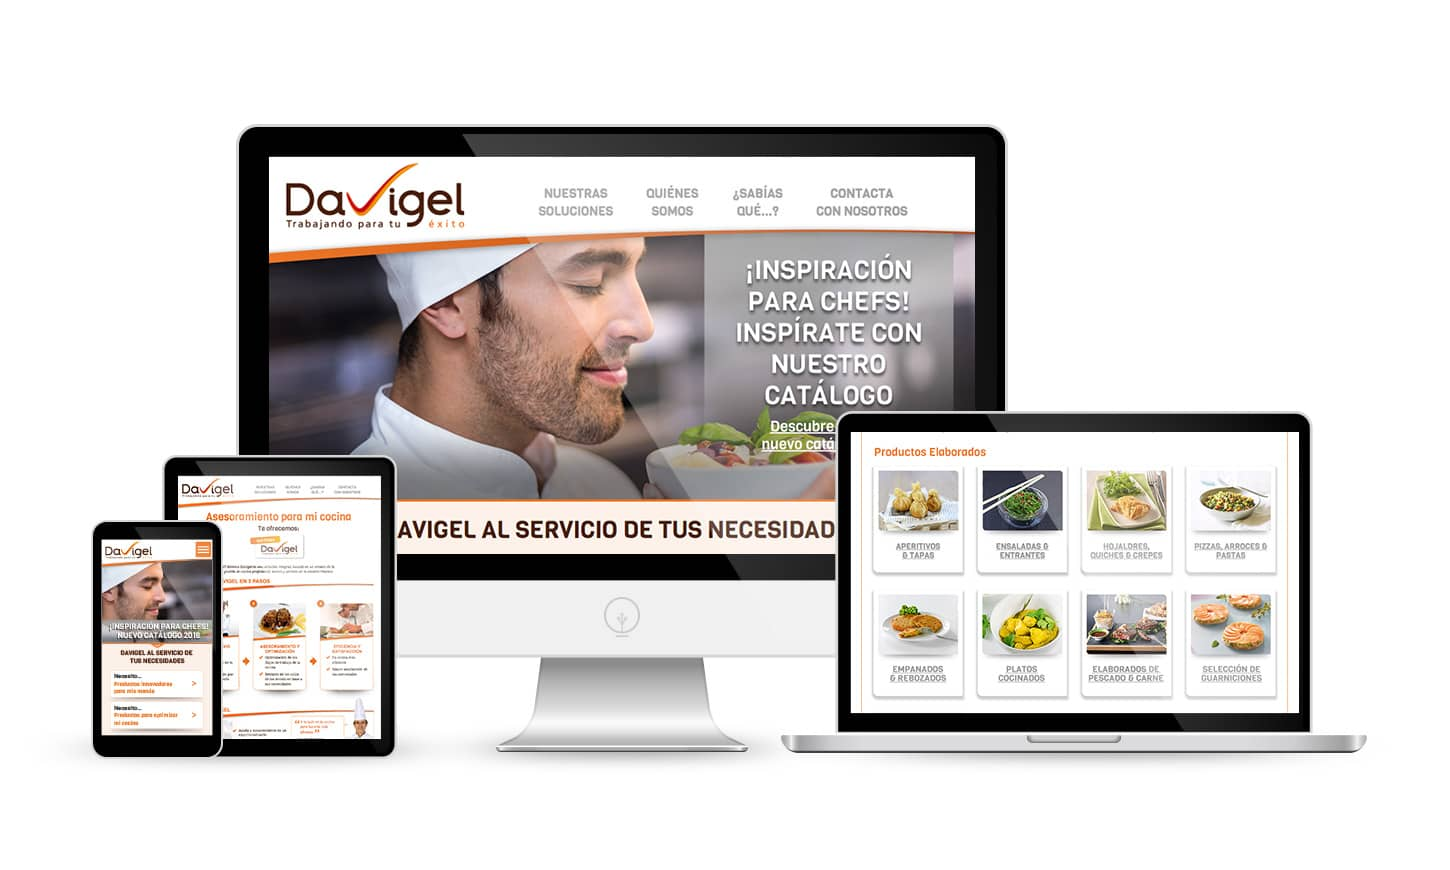 Website Davigel.es